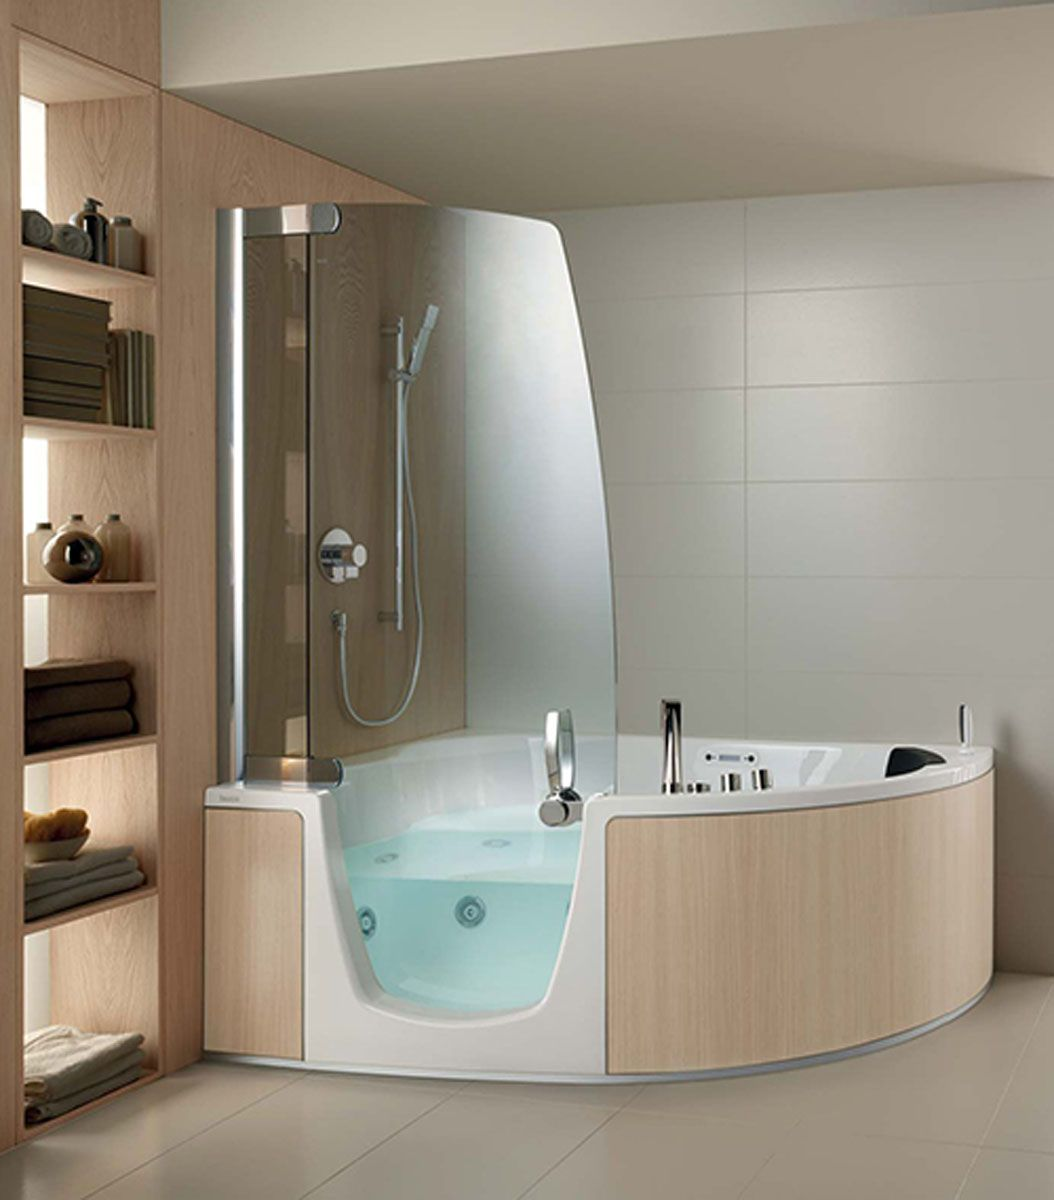 Bathroom tub and shower designs - Find This Pin And More On Showers Bathroom Ideas Sunken Tubs